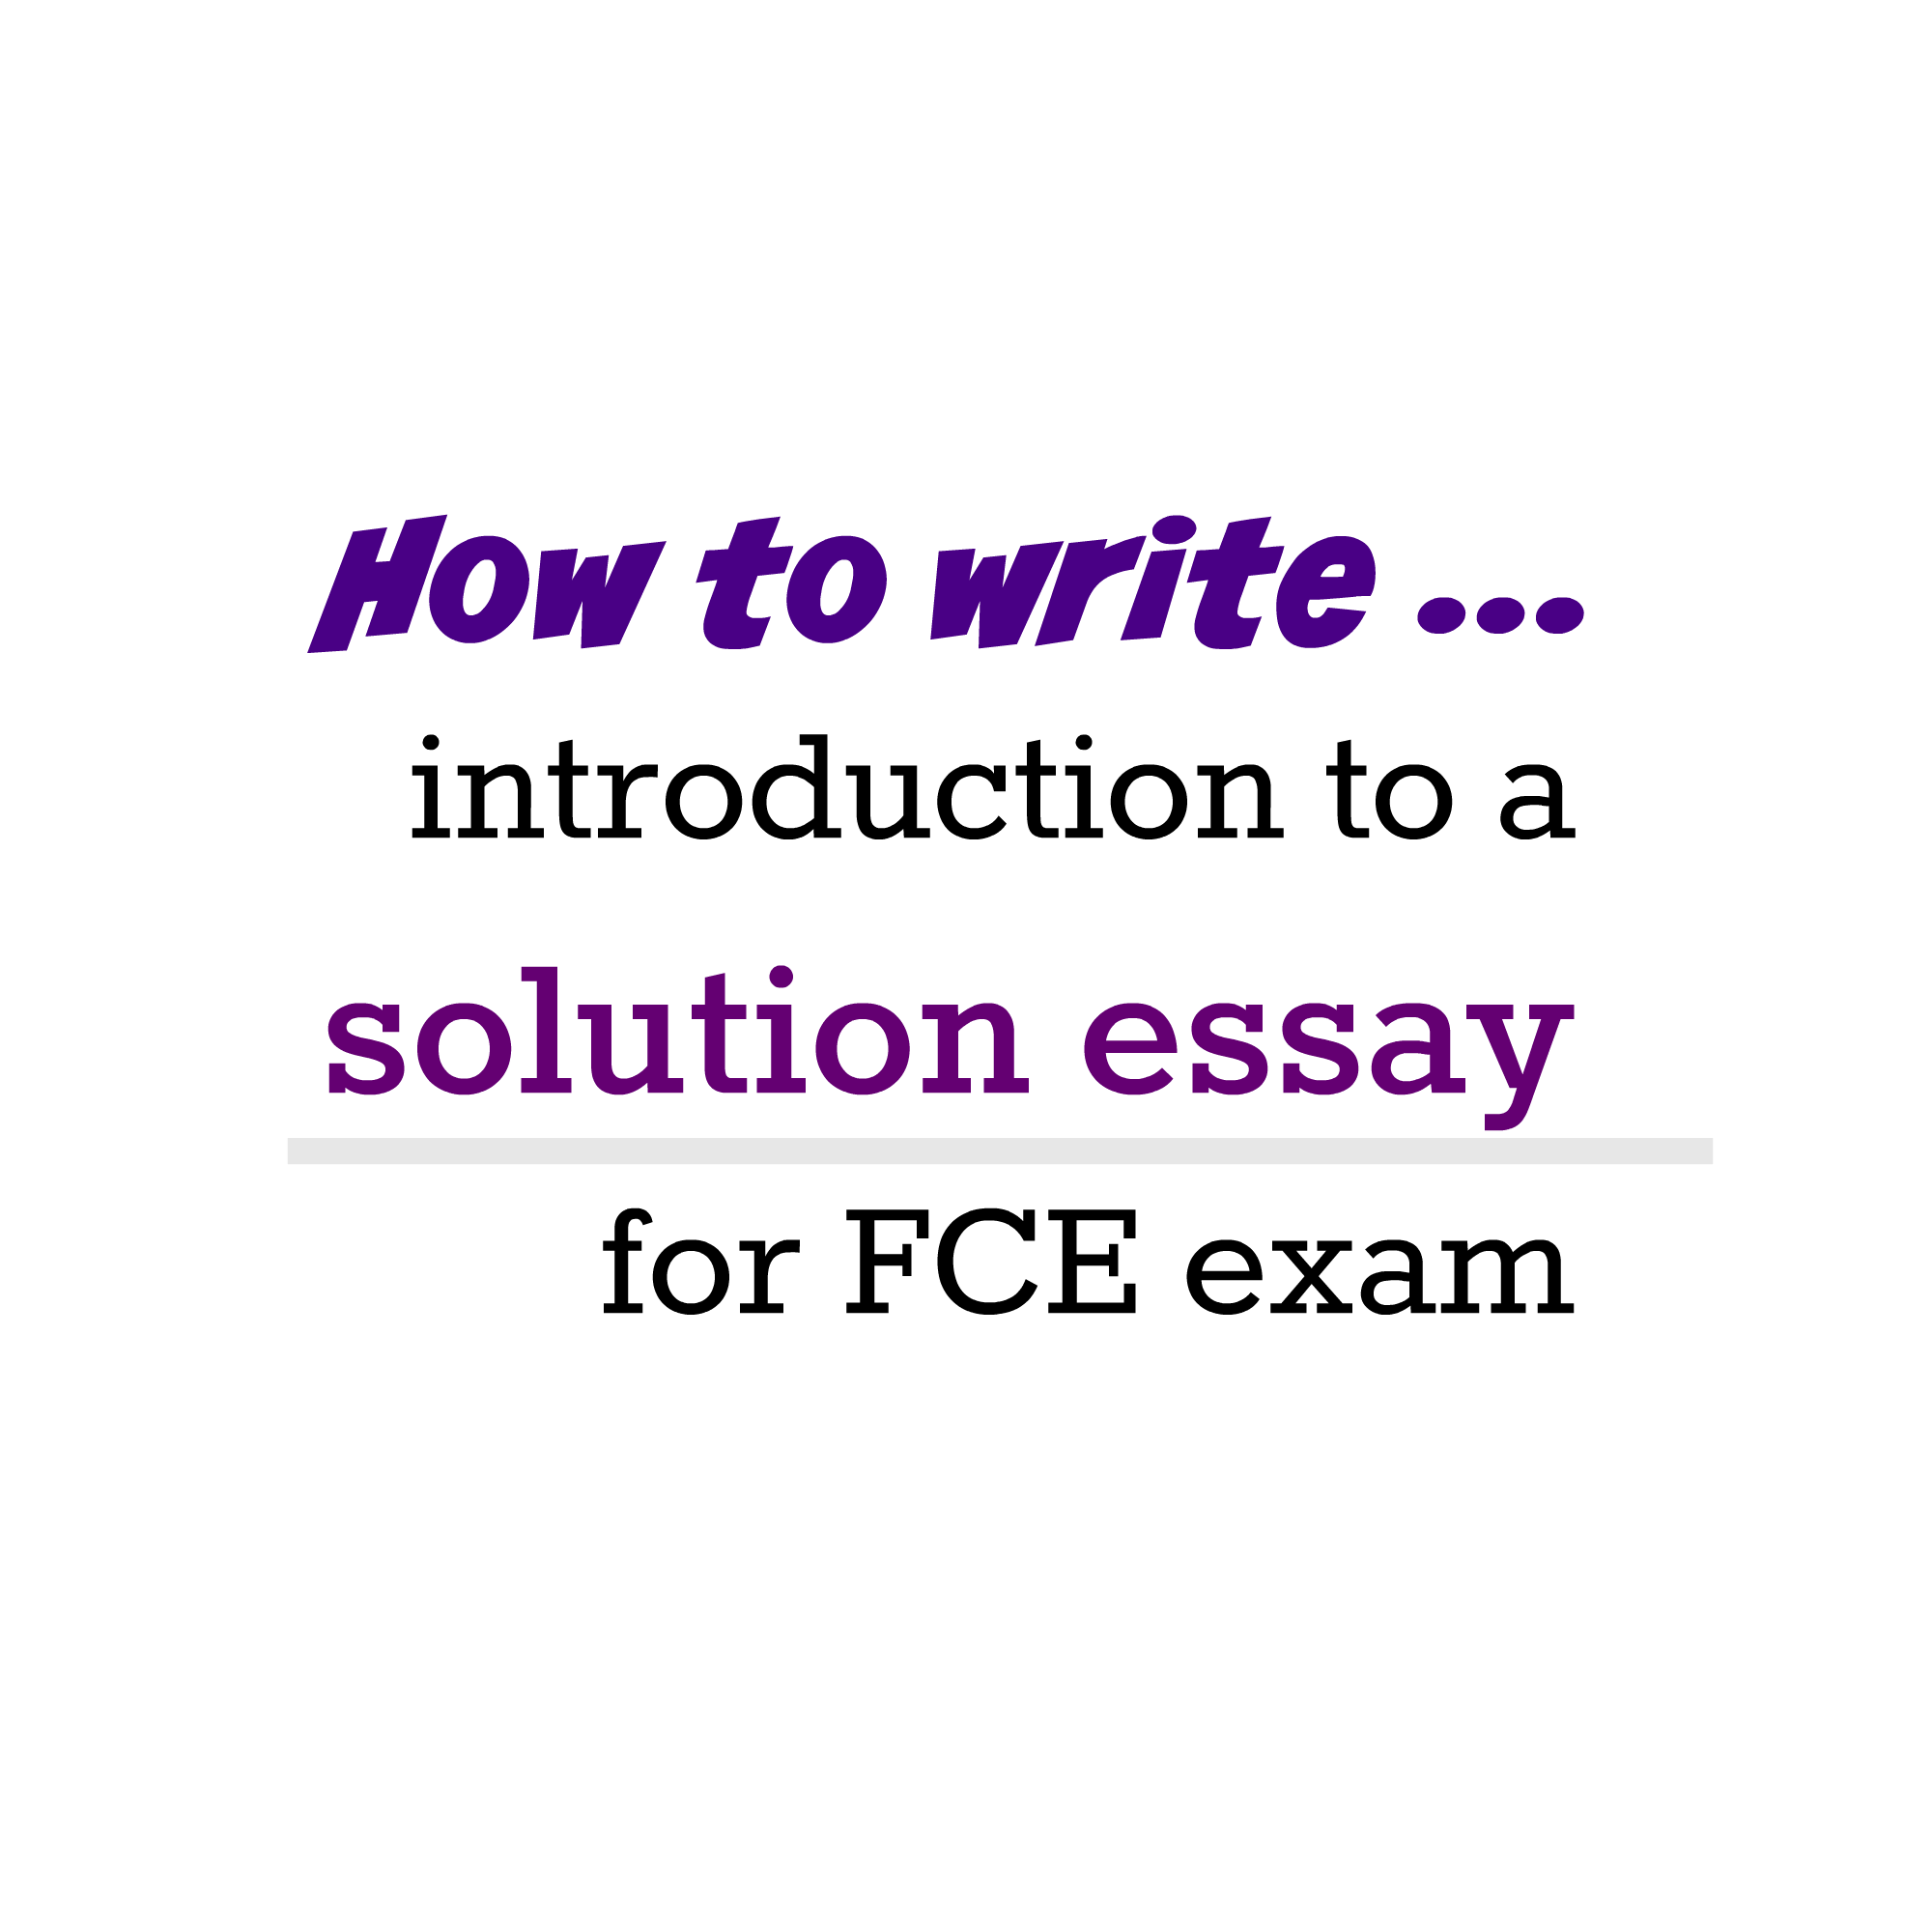 fce writing part essay a english exam help how to write the introduction to a solution essay for fce exam